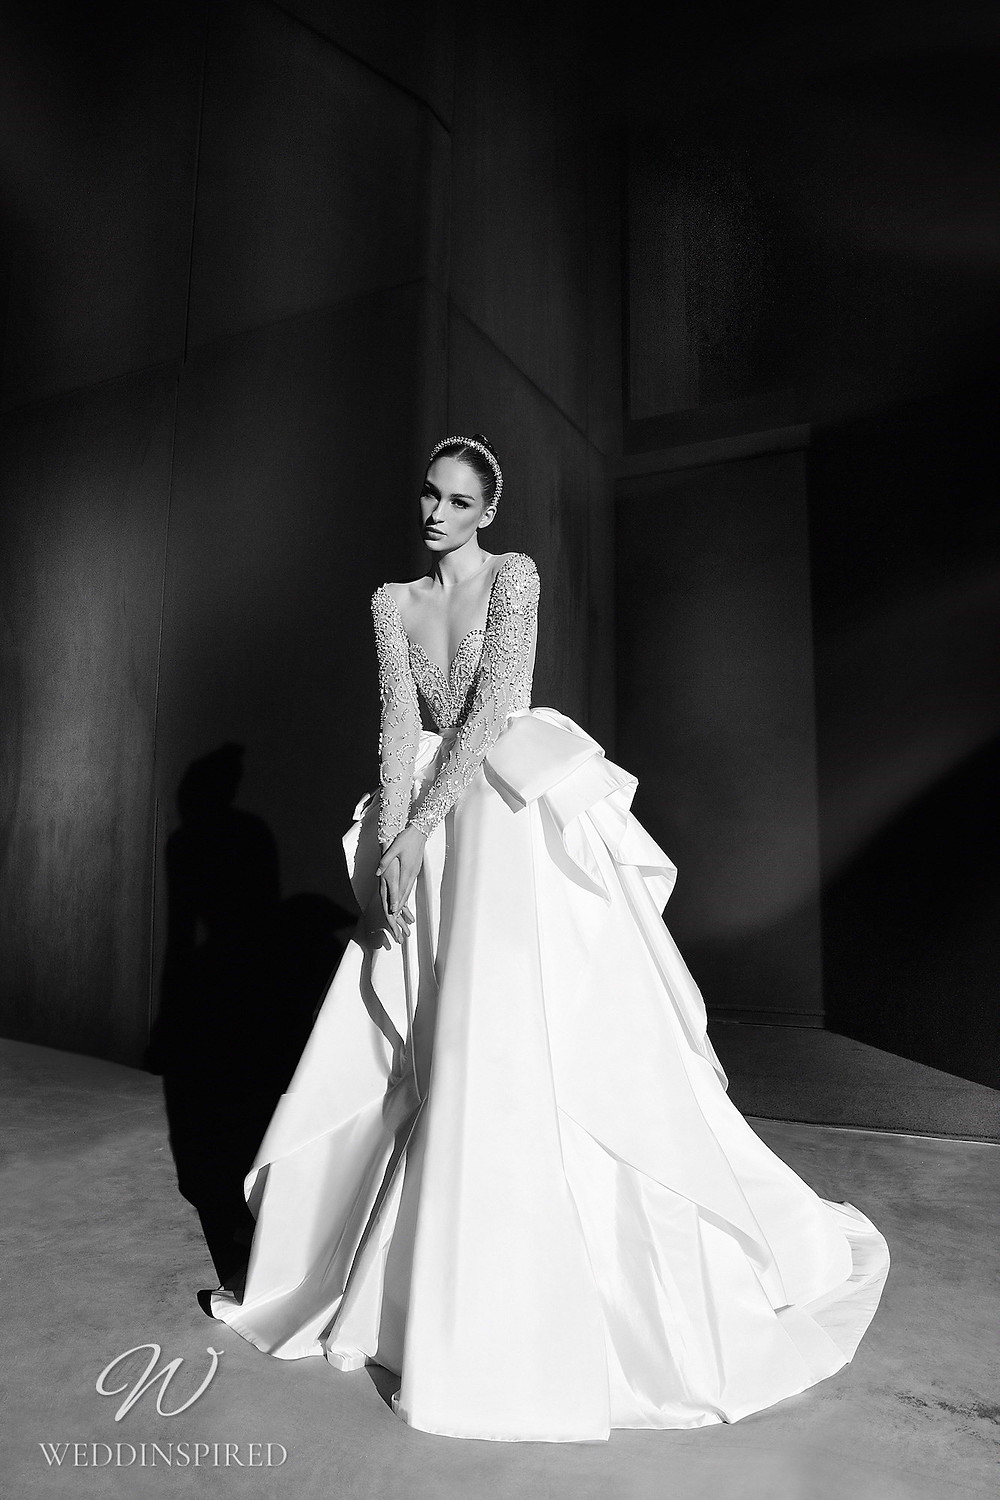 A Zuhair Murad Spring 2022 satin and mesh ball gown wedding dress with long sleeves